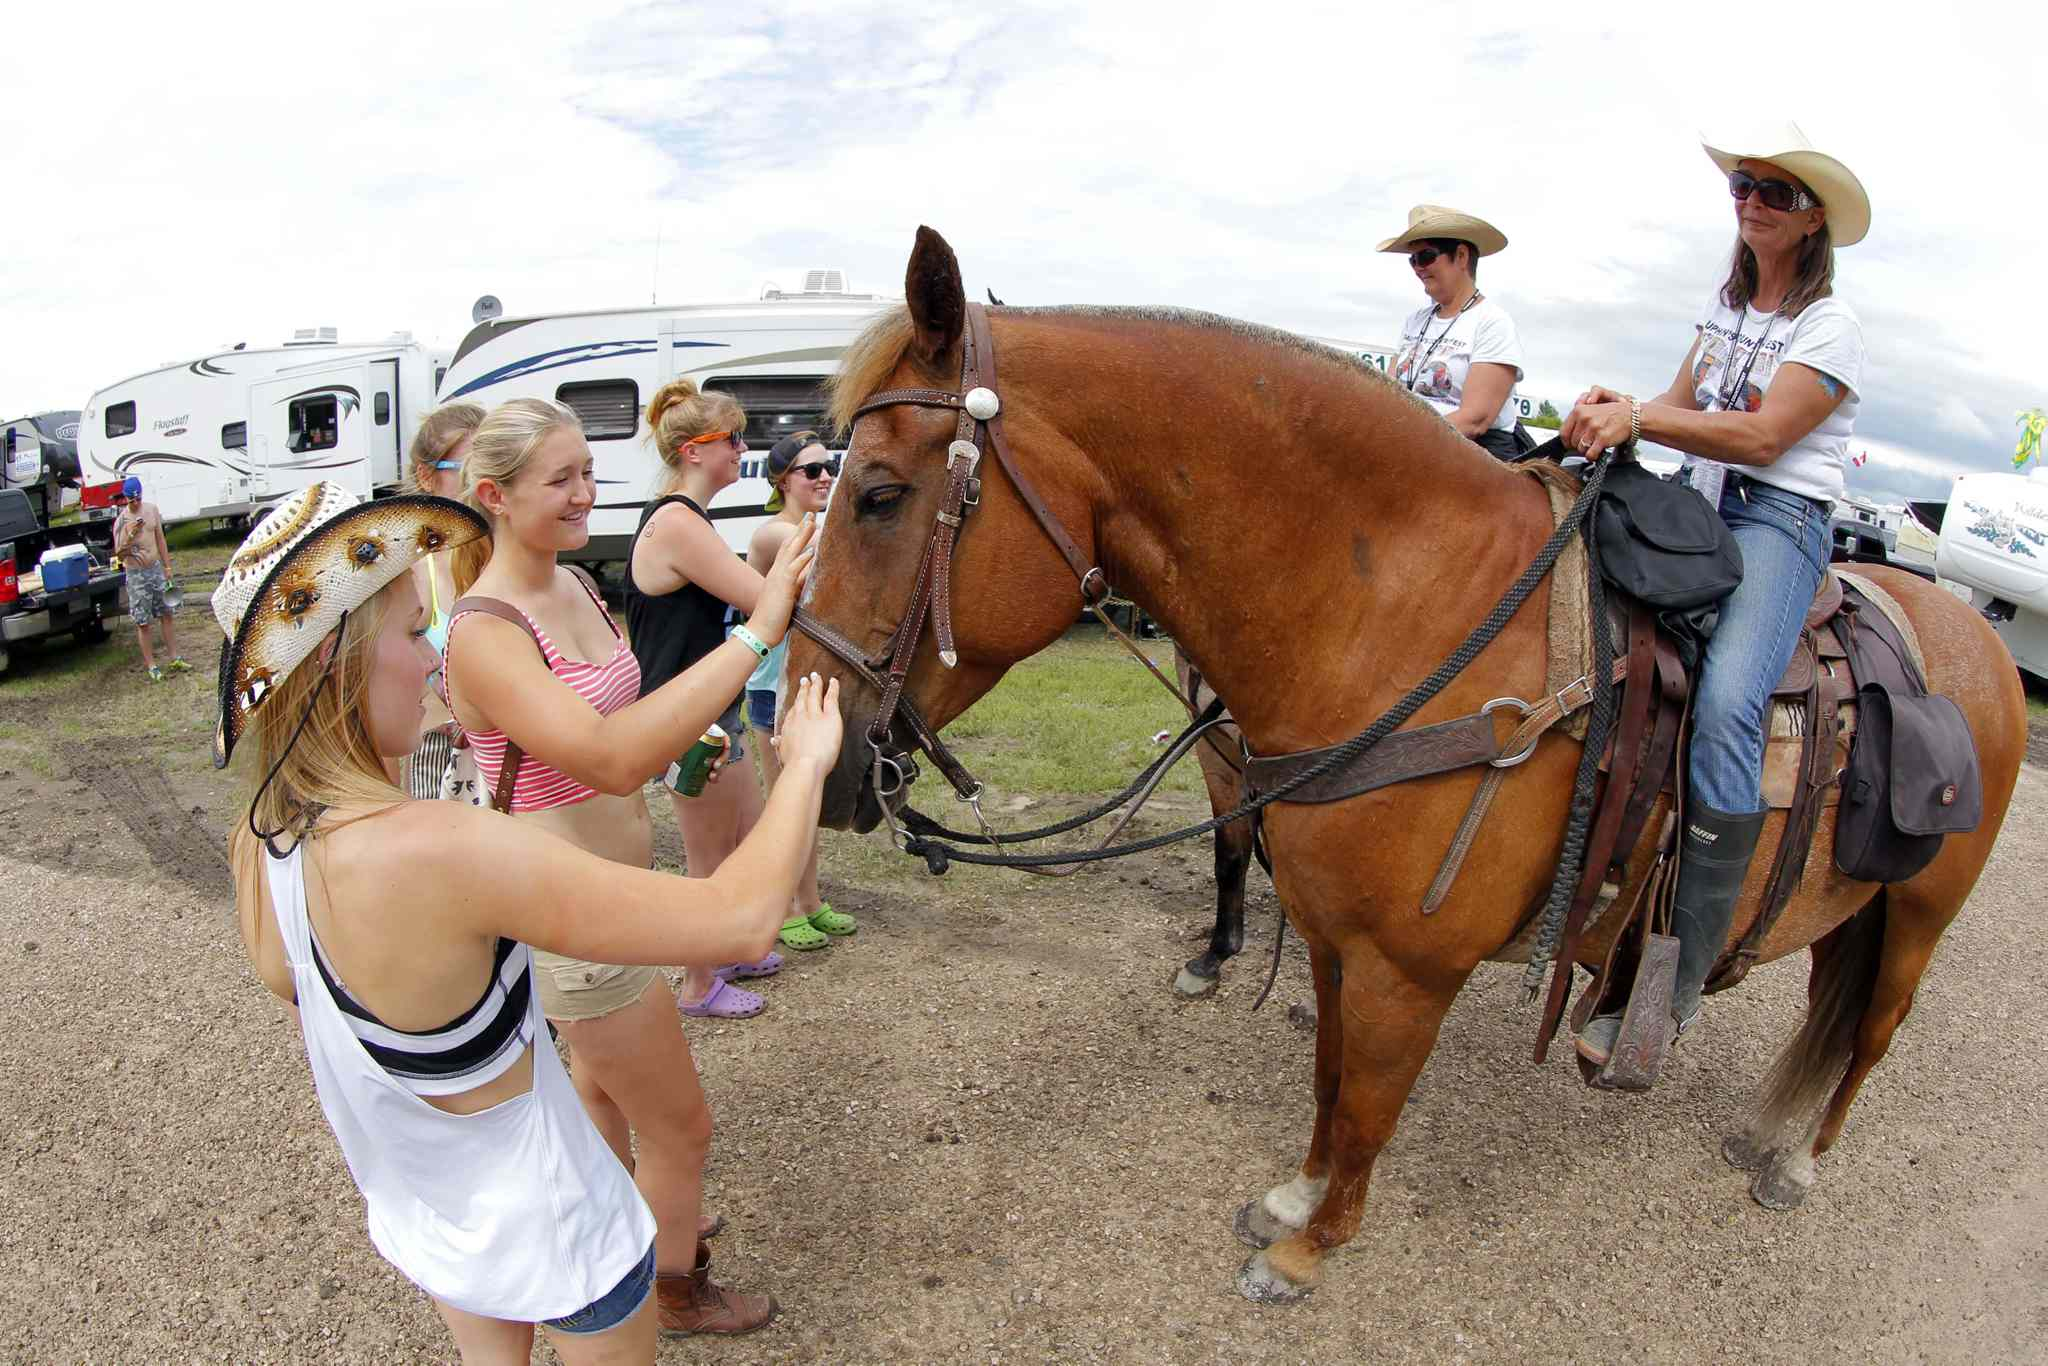 Some Countryfesters get introduced to Jeanie VanWorkum and her horse named Mister. They horse crew was brought in to promote good citizenship in the campground.